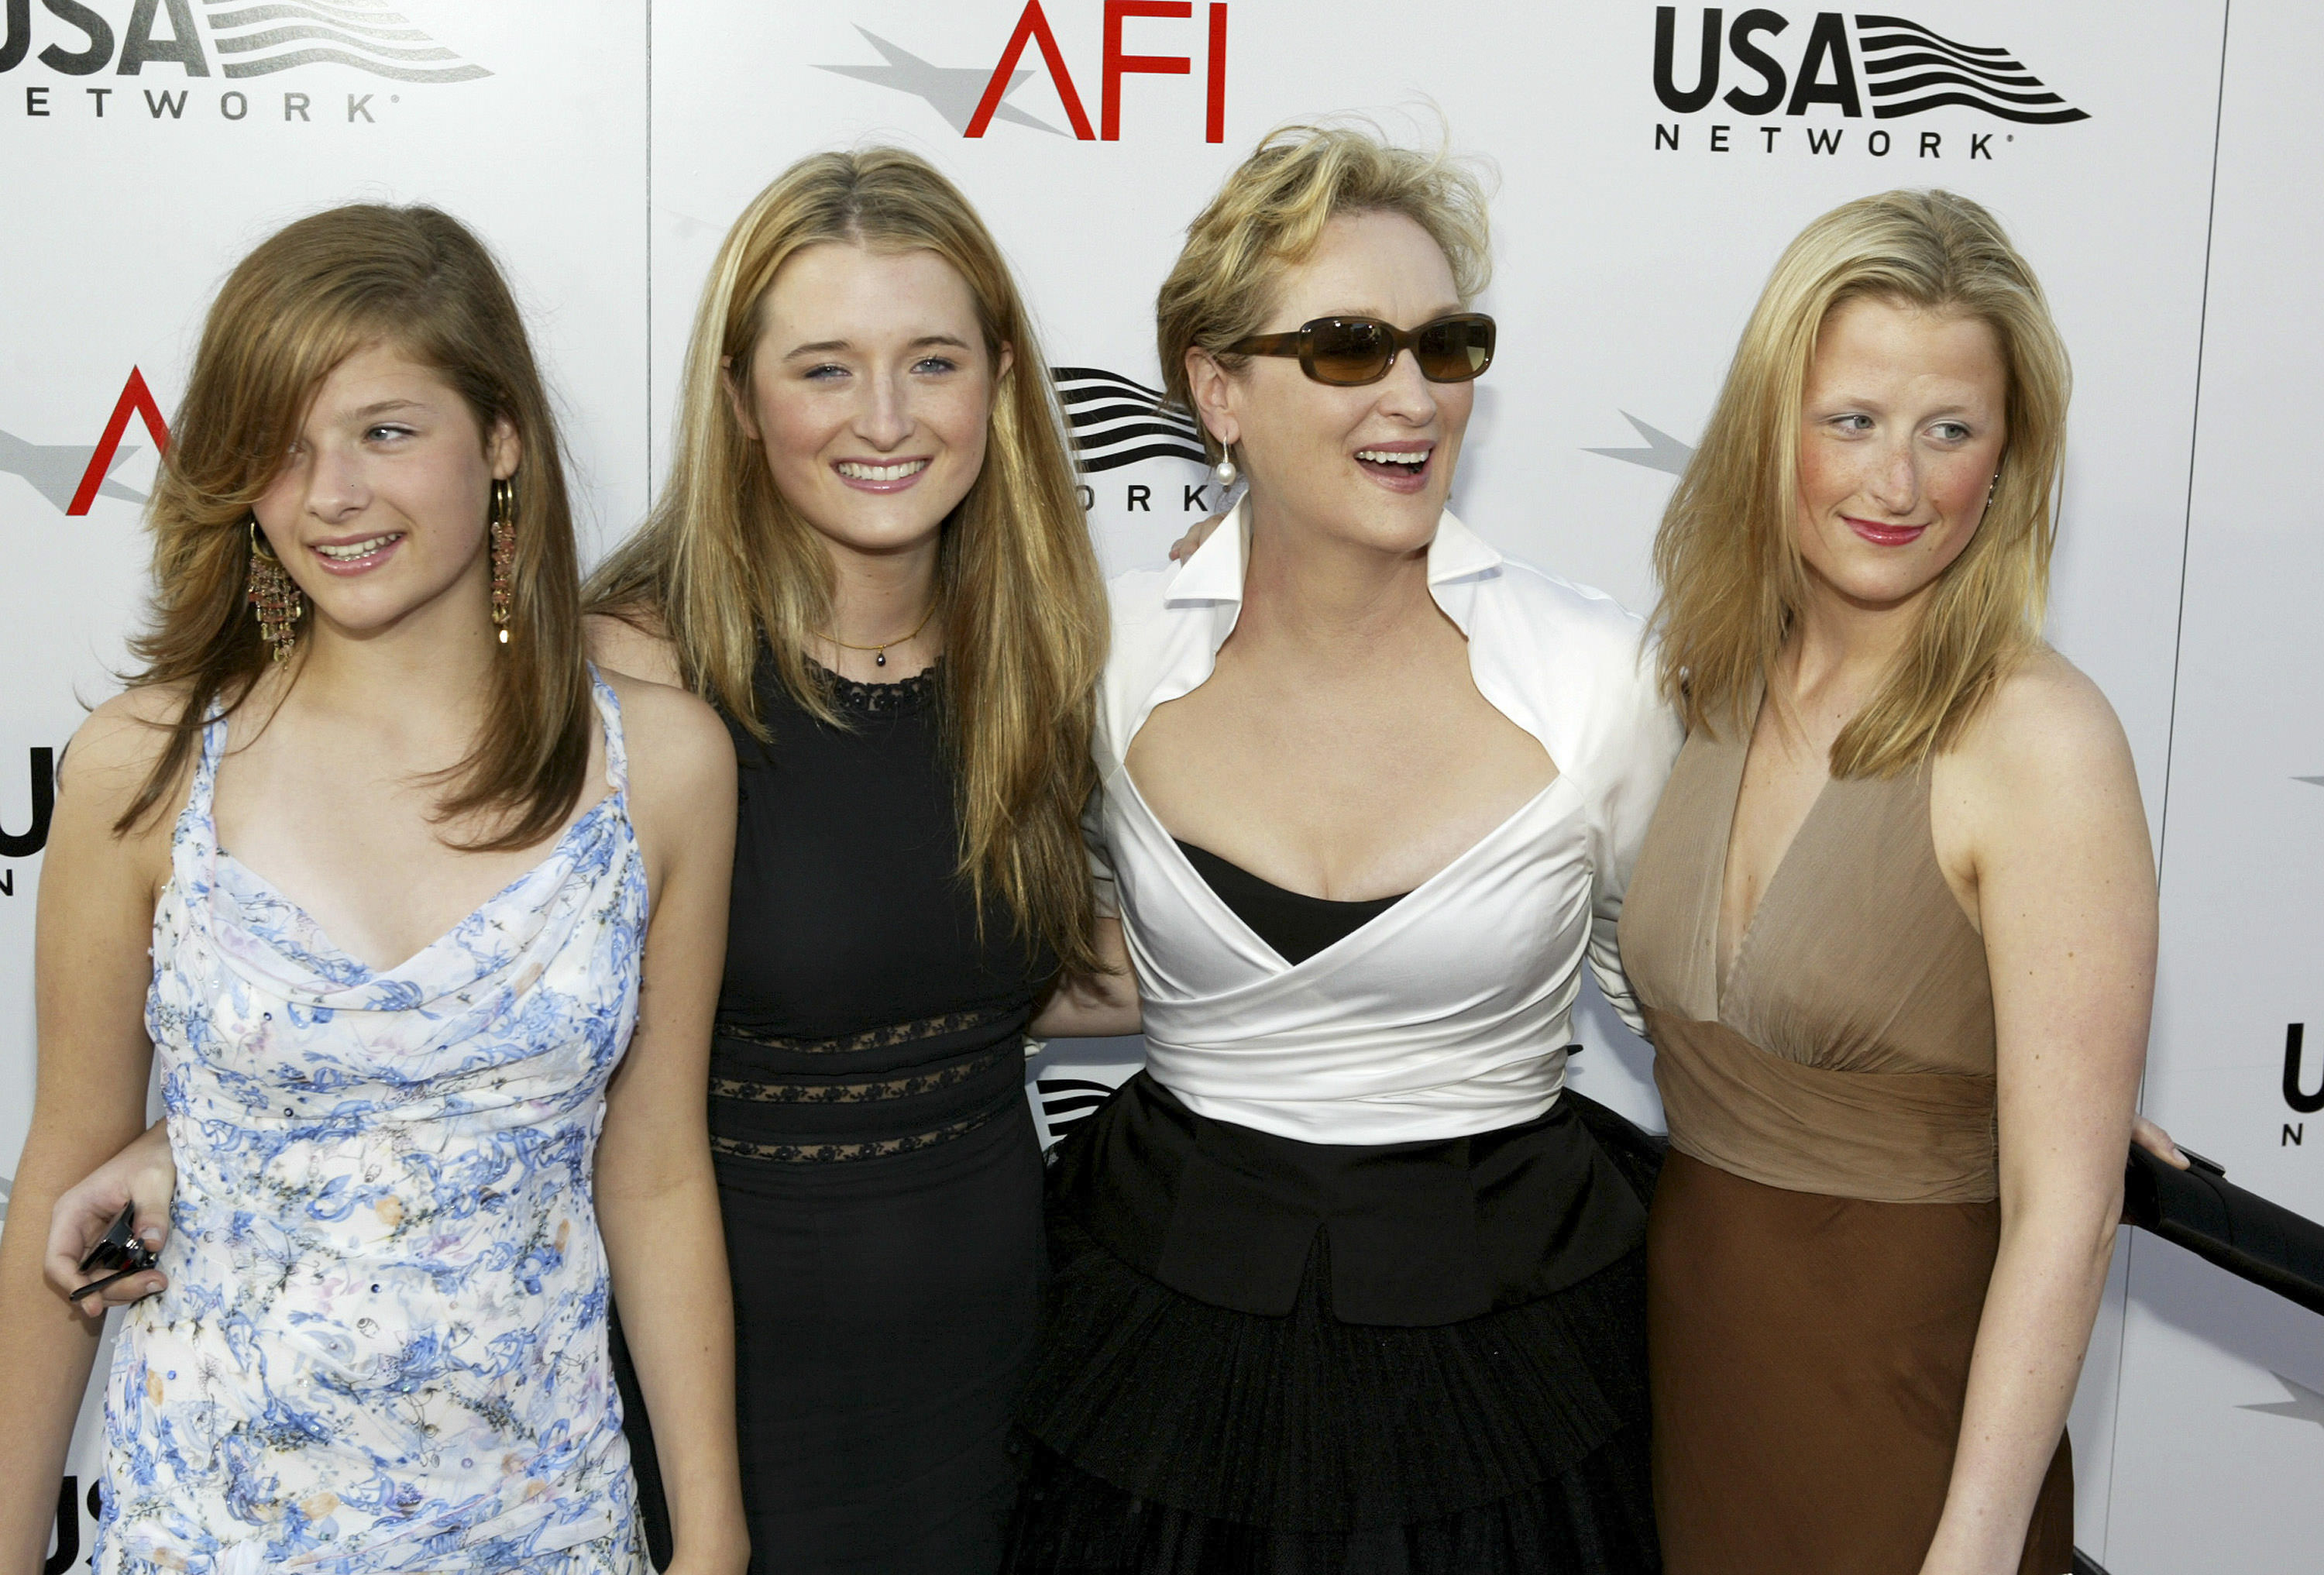 5 - Meryl Streep and her daughters Mamie, Grace and Louisa Gummer.